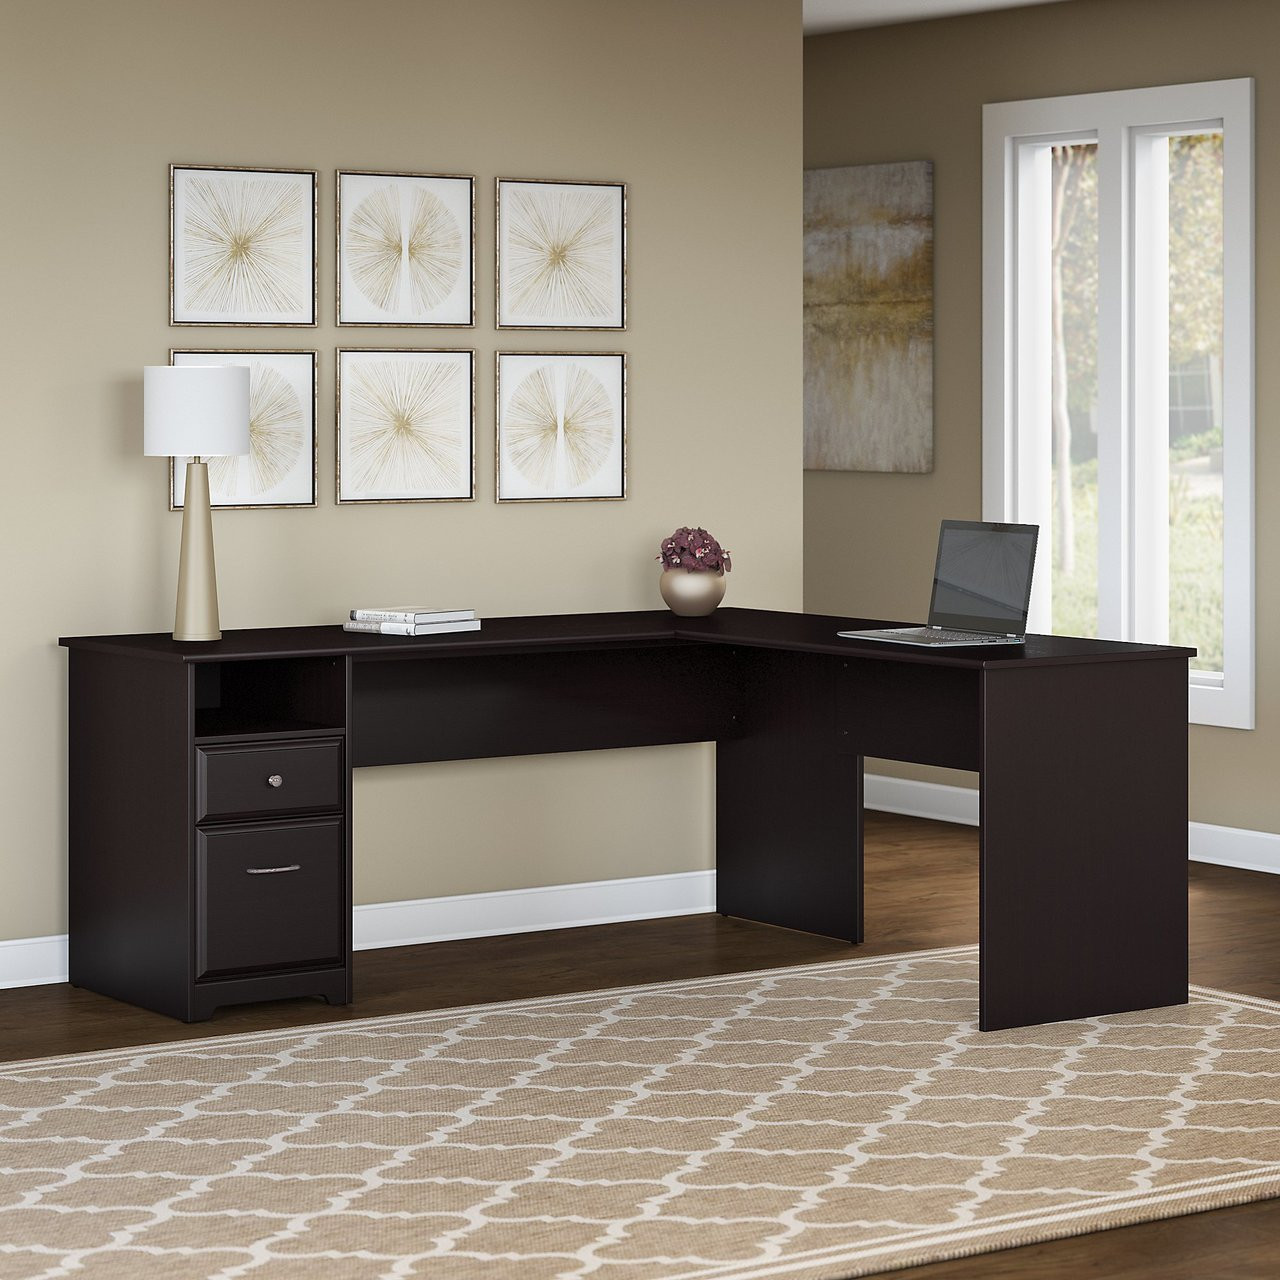 Bush Cab051epo Cabot L Shaped Computer Desk With Drawers 72 W Free Shipping